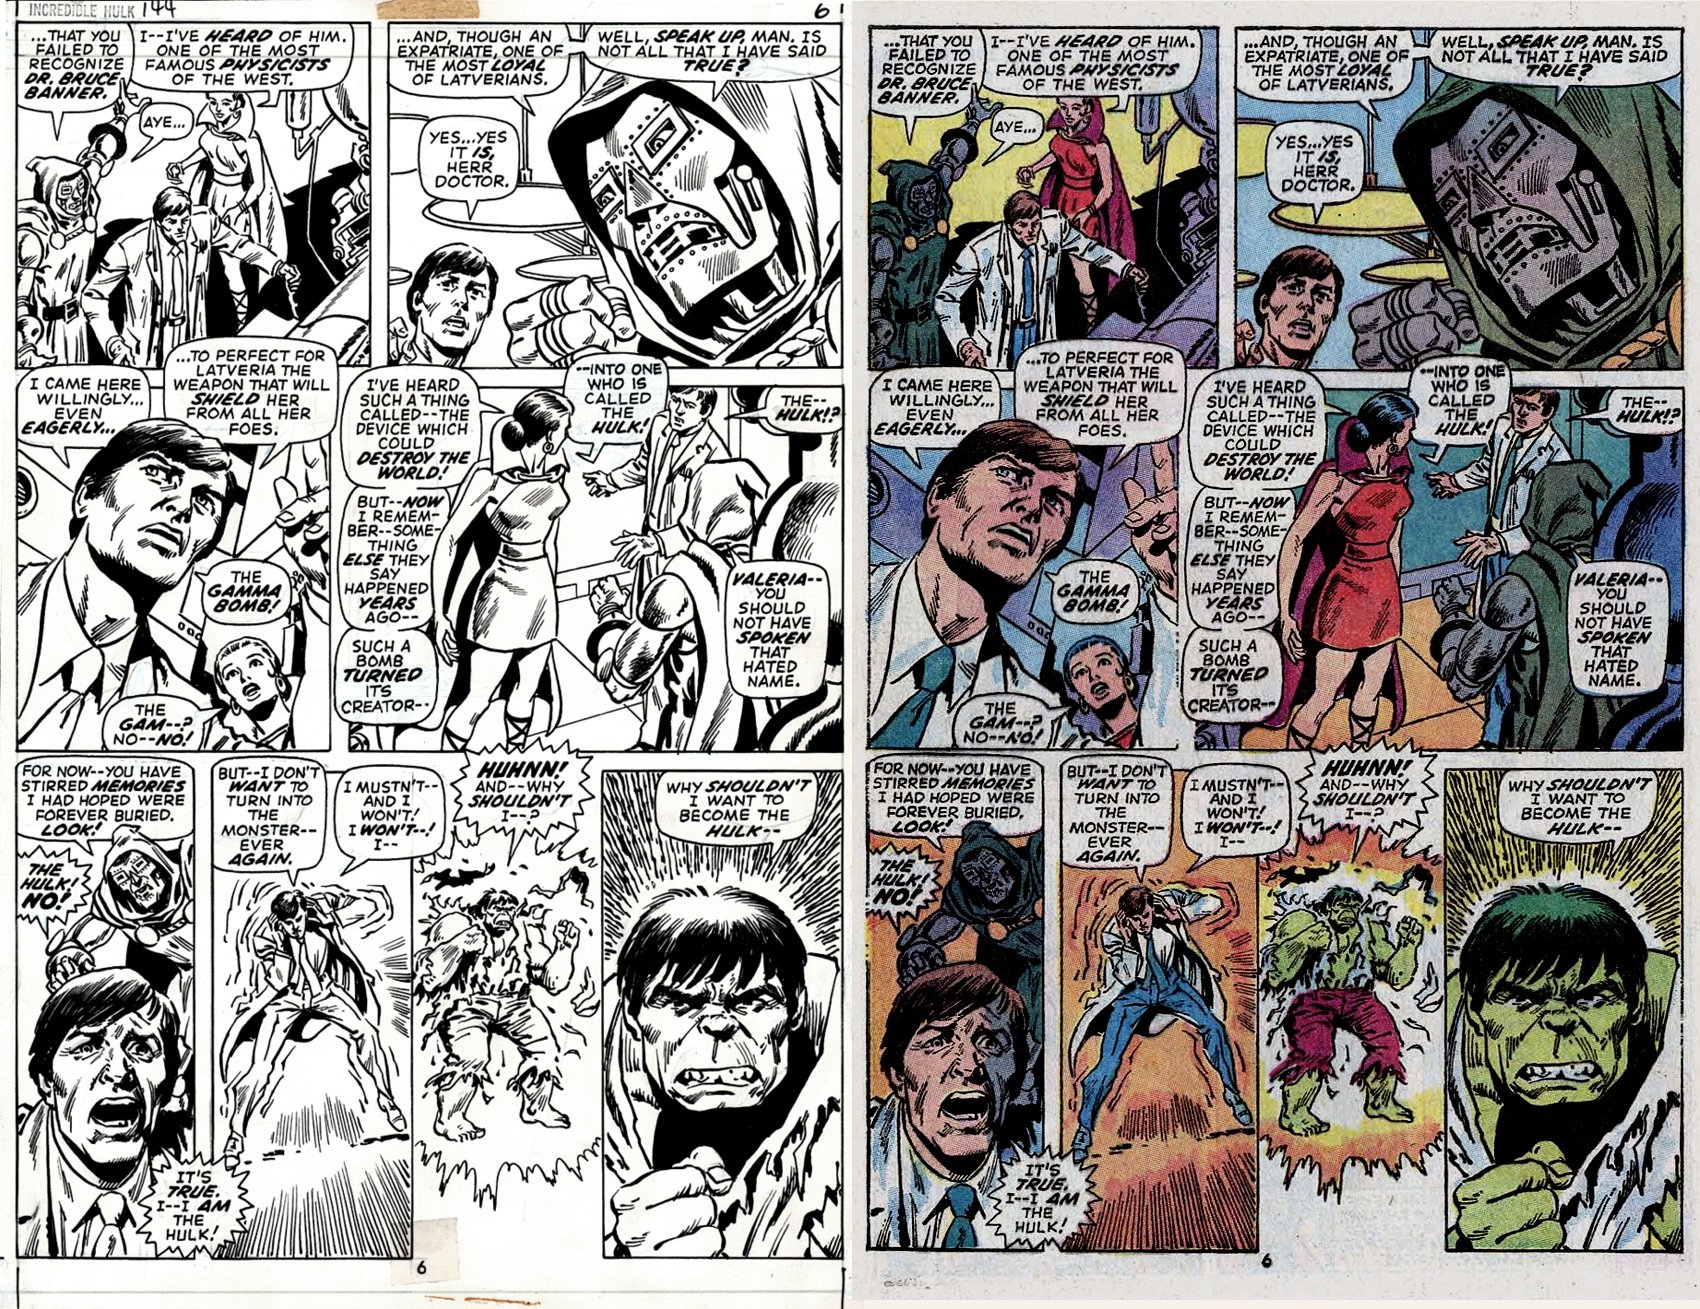 Incredible Hulk #144 p 6 (SOLD LIVE ON 'DUELING DEALERS OF COMIC ART' EPISODE #21 PODCAST ON 6-9-2021 (RE-WATCH THIS FUNNY ART SELLING SHOW HERE)